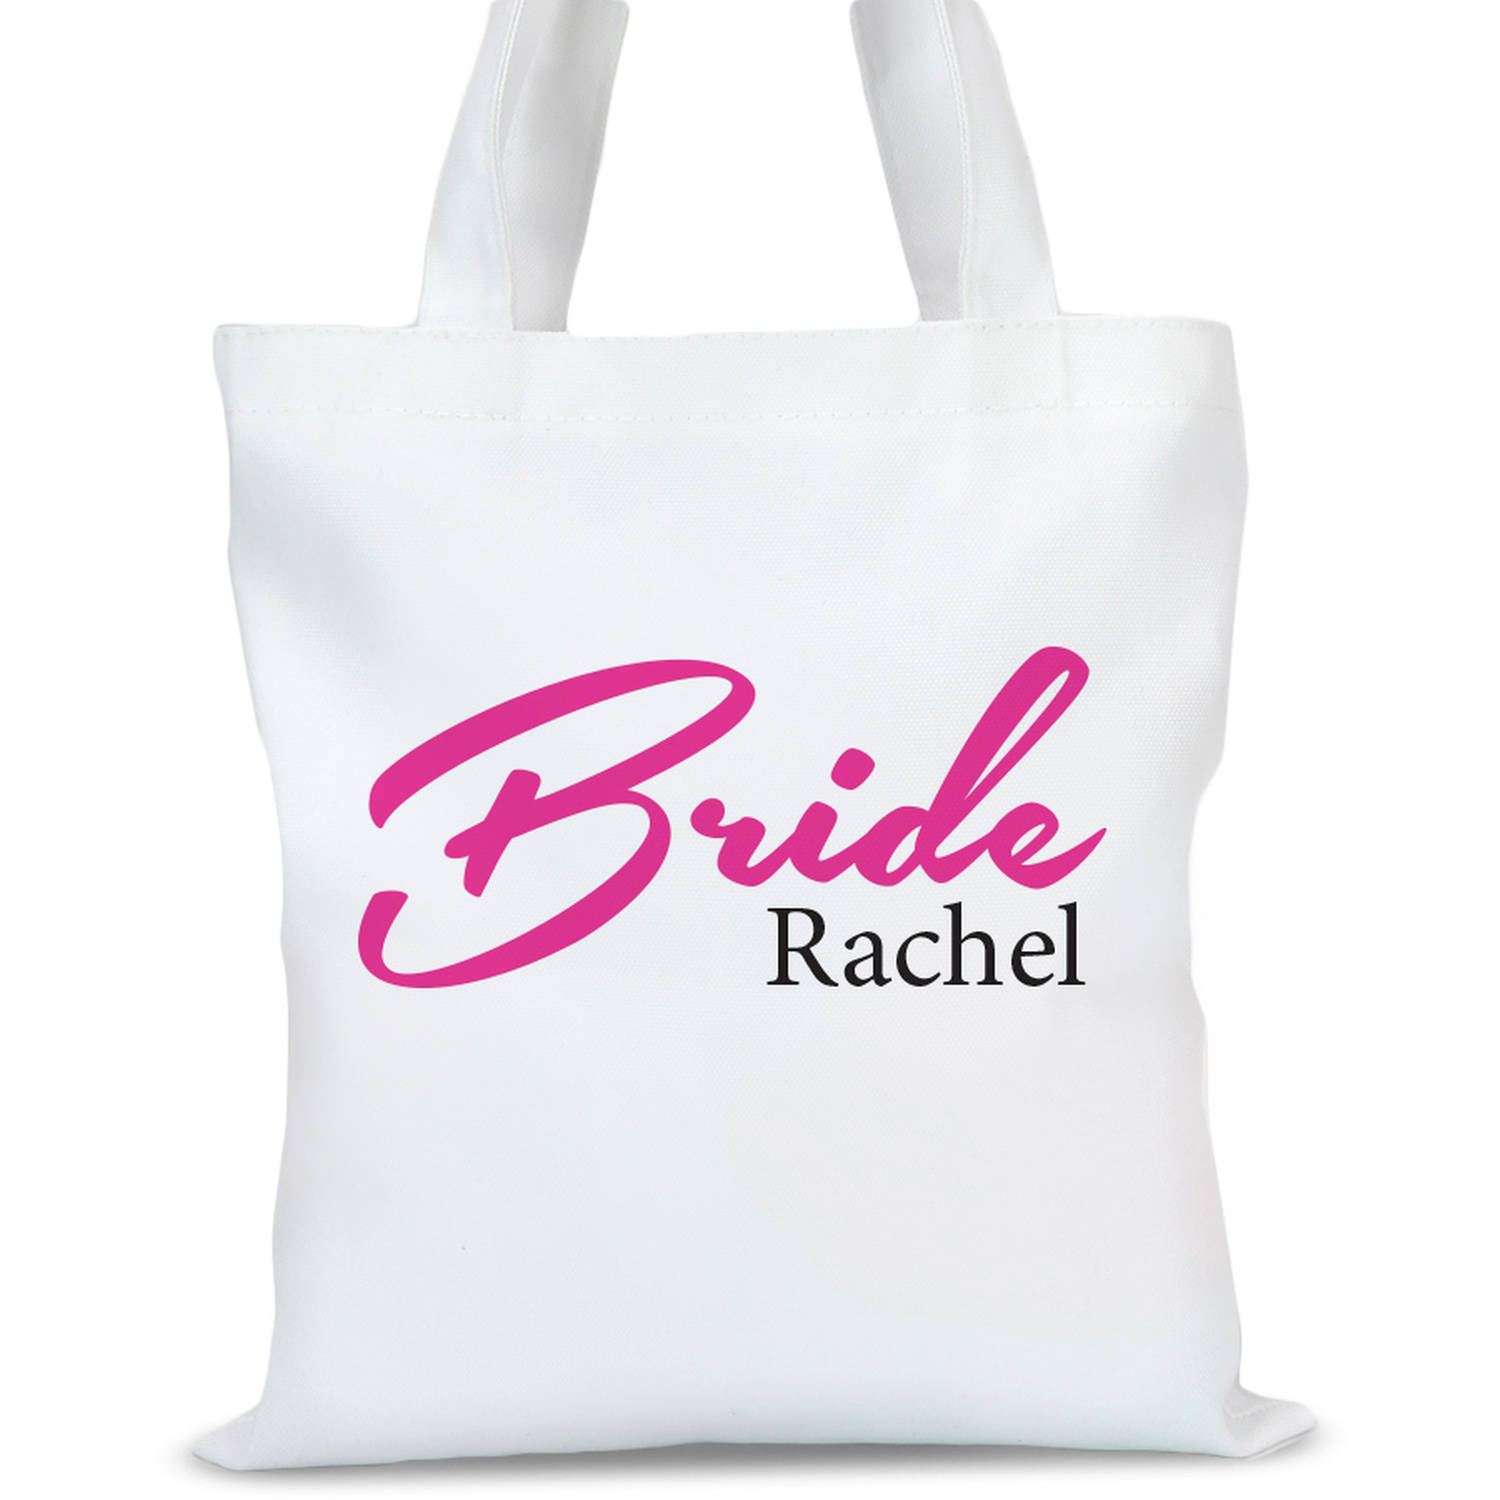 """Personalized Bridal Tote Bag, Sizes 11"""" x 14"""" and 14.5"""" x 18"""""""